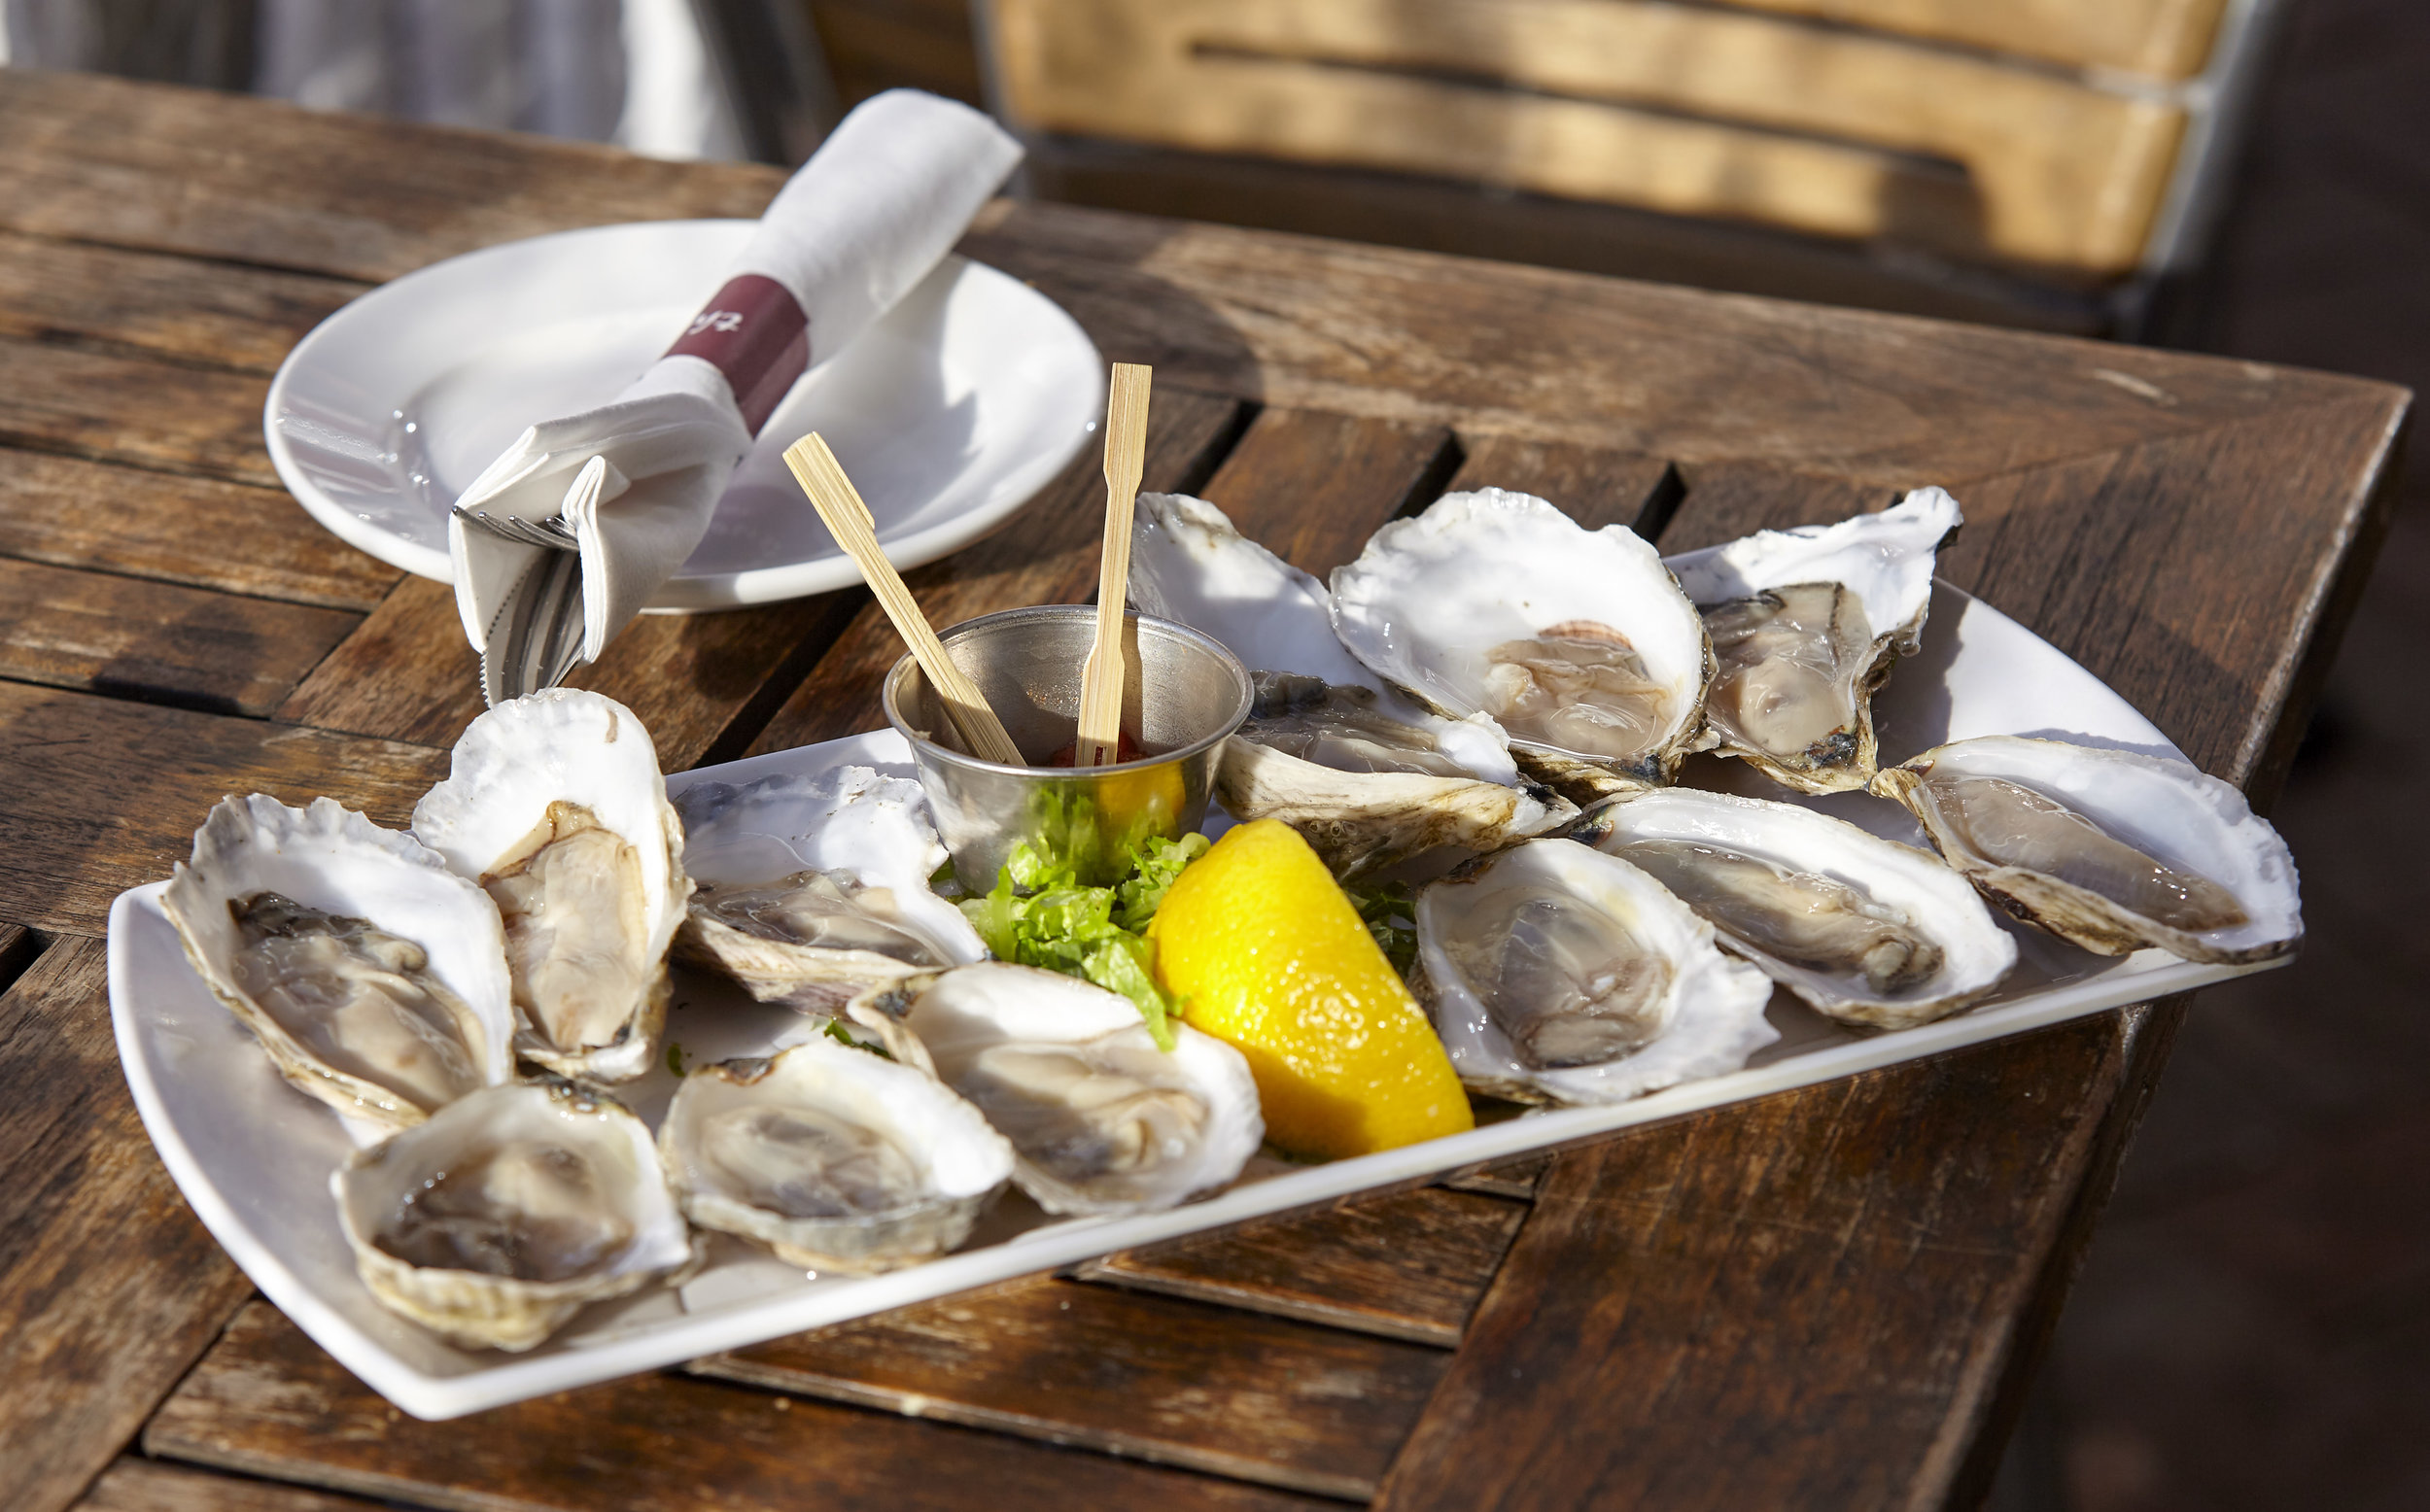 the red house features 2 for $1 oysters everyday ( minimum of 6 ) from noon - 5pm & 9 pm - close. Everyone's first dozen oysters are priced at 2 for $1; after that oysters are just $1 each -- still a great deal!    Between 5 pm - 9 pm , oysters are still only $1 each. The origin of our oysters will be subject to change.  Sorry, reservations are not accepted for oysters & drinks tables.